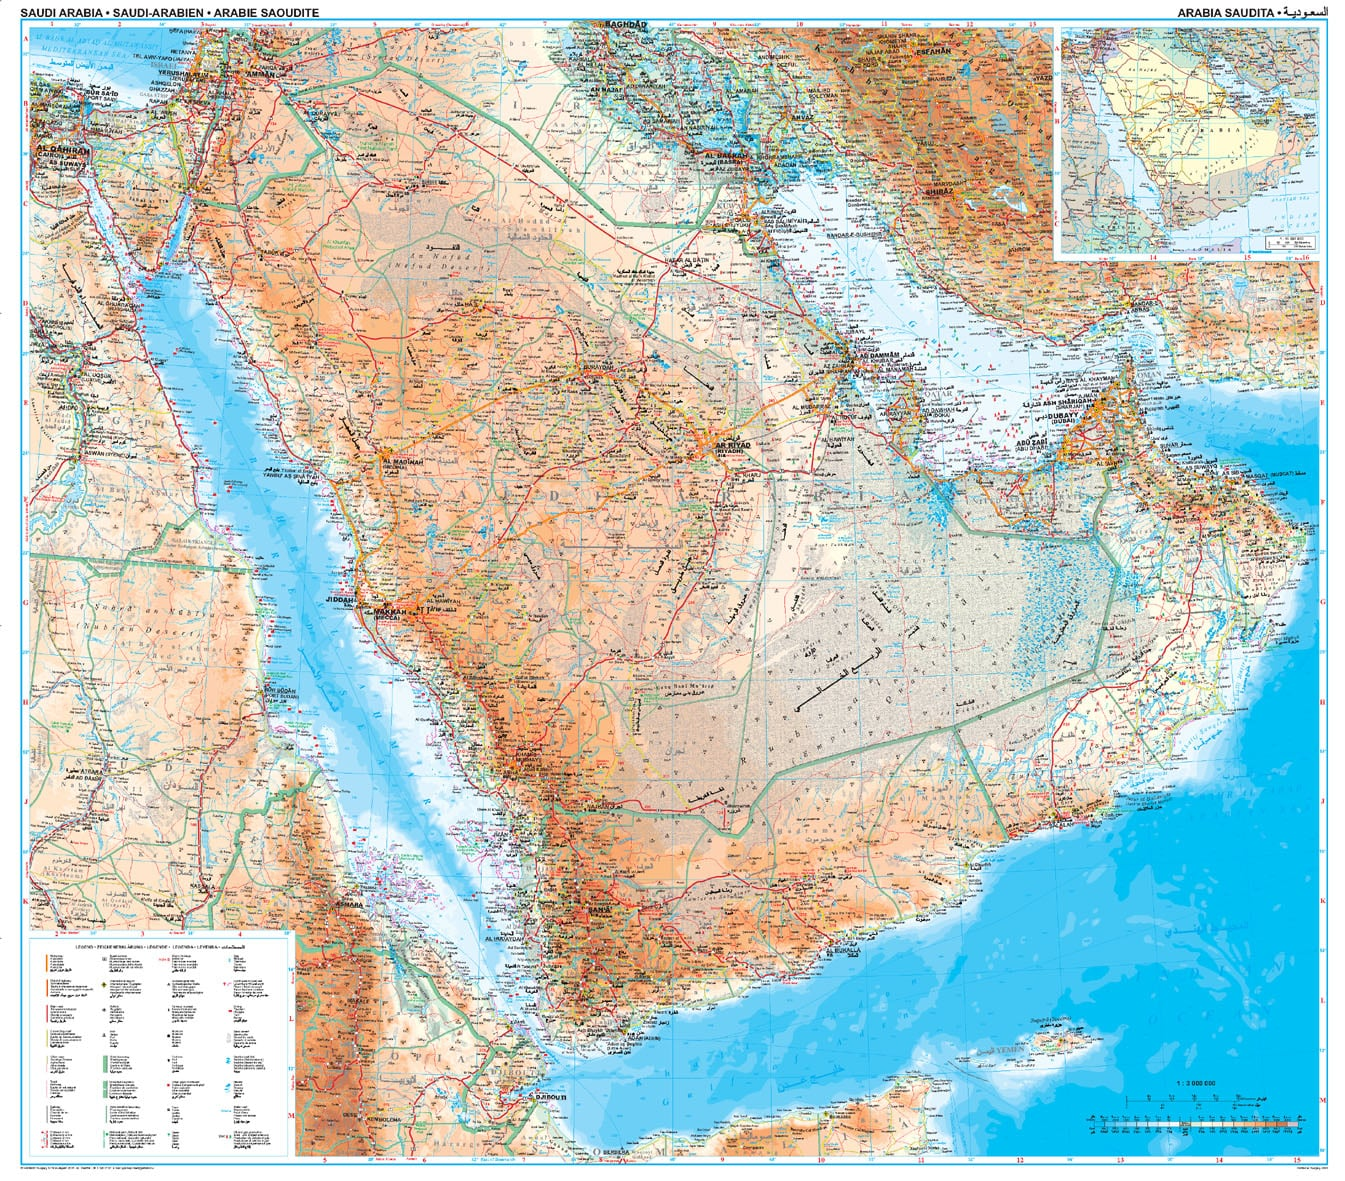 Saudi Arabia Wall Map Asia Countries maps Asia Wall Maps